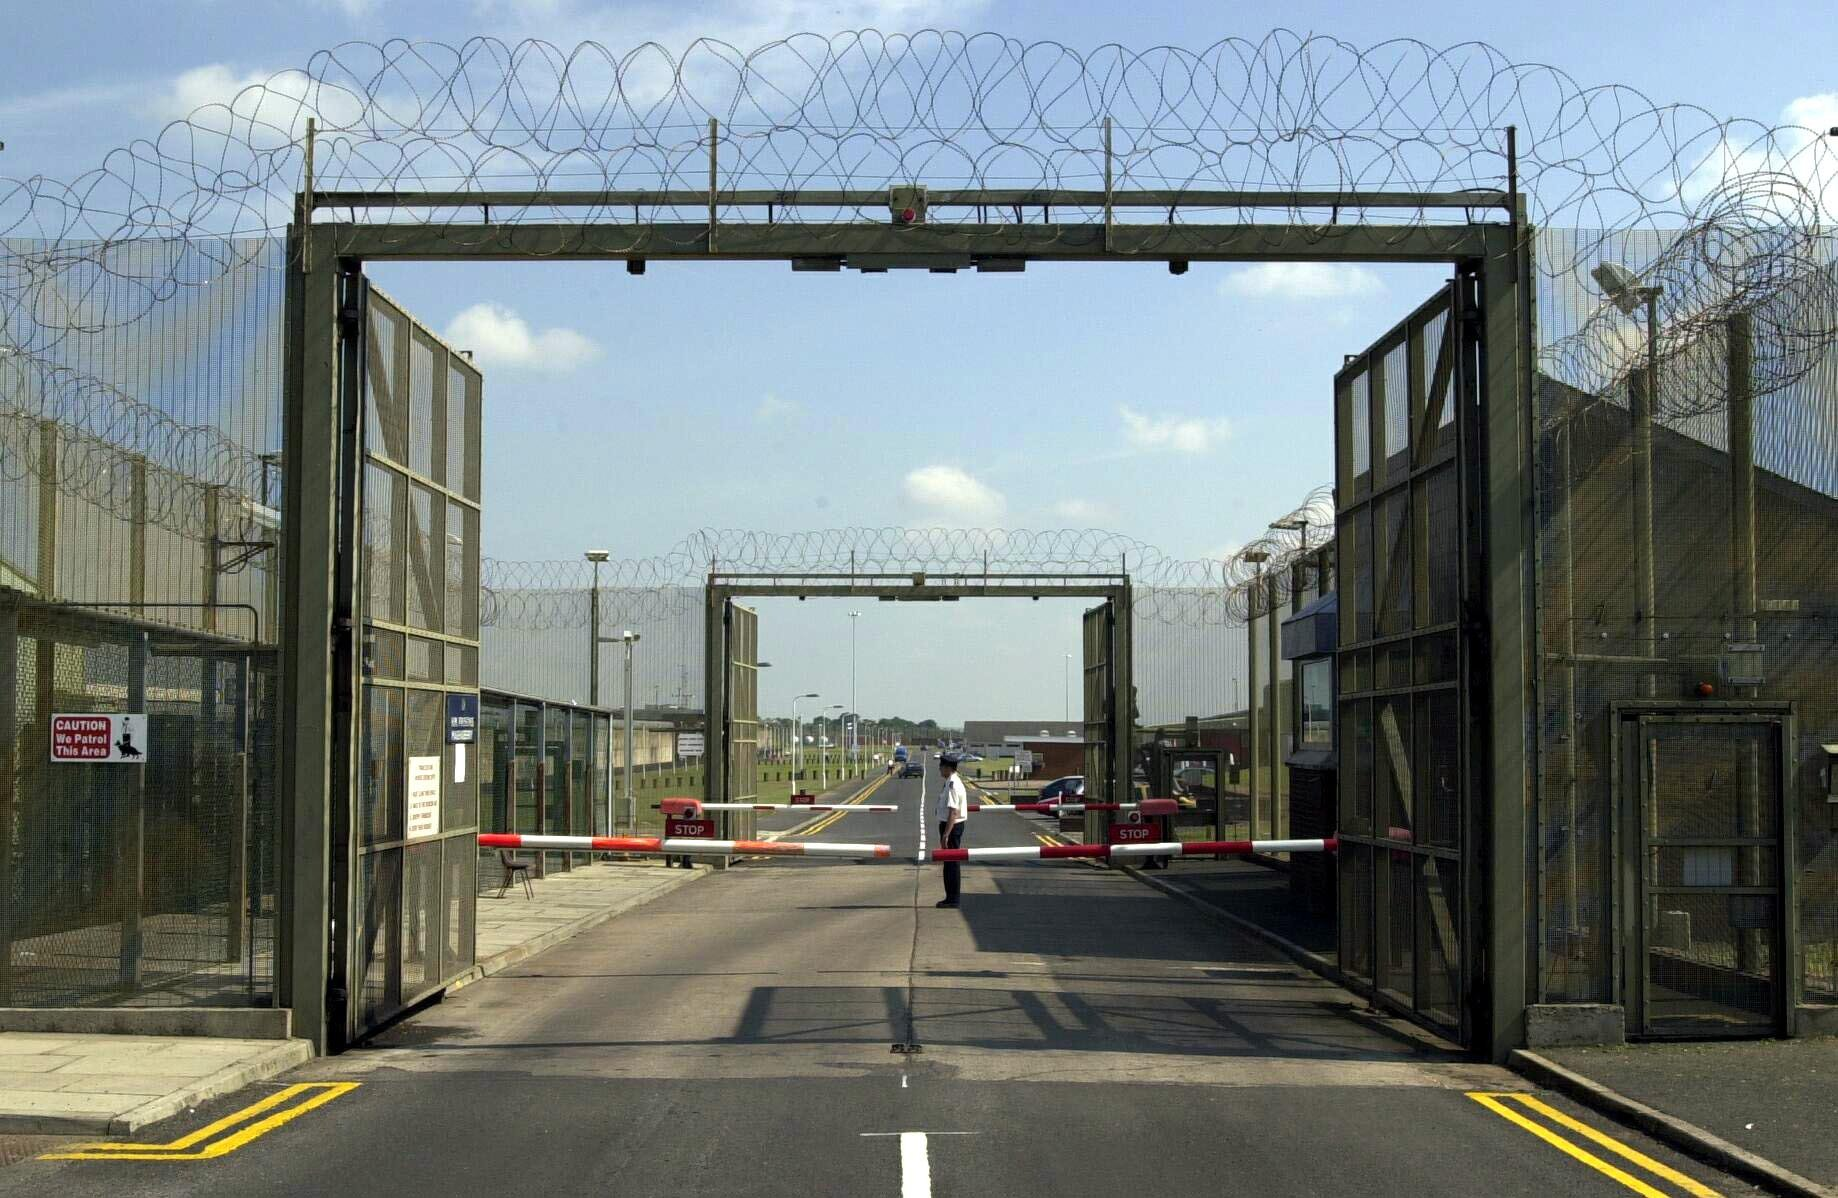 The front gates at the entrance of Maghaberry Prison in Northern Ireland, where Loyalist Billy Adair is back behind bars on the orders of Northern Ireland Secretary Peter Mandelson. 27/08/03 Prison staff have searched the top security Northern Ireland jail for a gun amid fears that loyalist inmates have smuggled a weapon inside. All visits to the Bann House section of Maghaberry Prison near Lisburn, Co Antrim, were suspended as warders hunted the cells. Dissident republicans claimed a firearm was pulled during a brutal attack on two men by a gang of loyalists held in the same wing. 21/11/03: Maghaberry jail near Lisburn, Co Antrim, which is being run by police, after warders failed to report for duty. It is believed that the unofficial action, which also affected Magilligan, Co Londonderry, is linked to a major row between management and warders who have demanded increased security to deal with alleged loyalist terrorist threats.